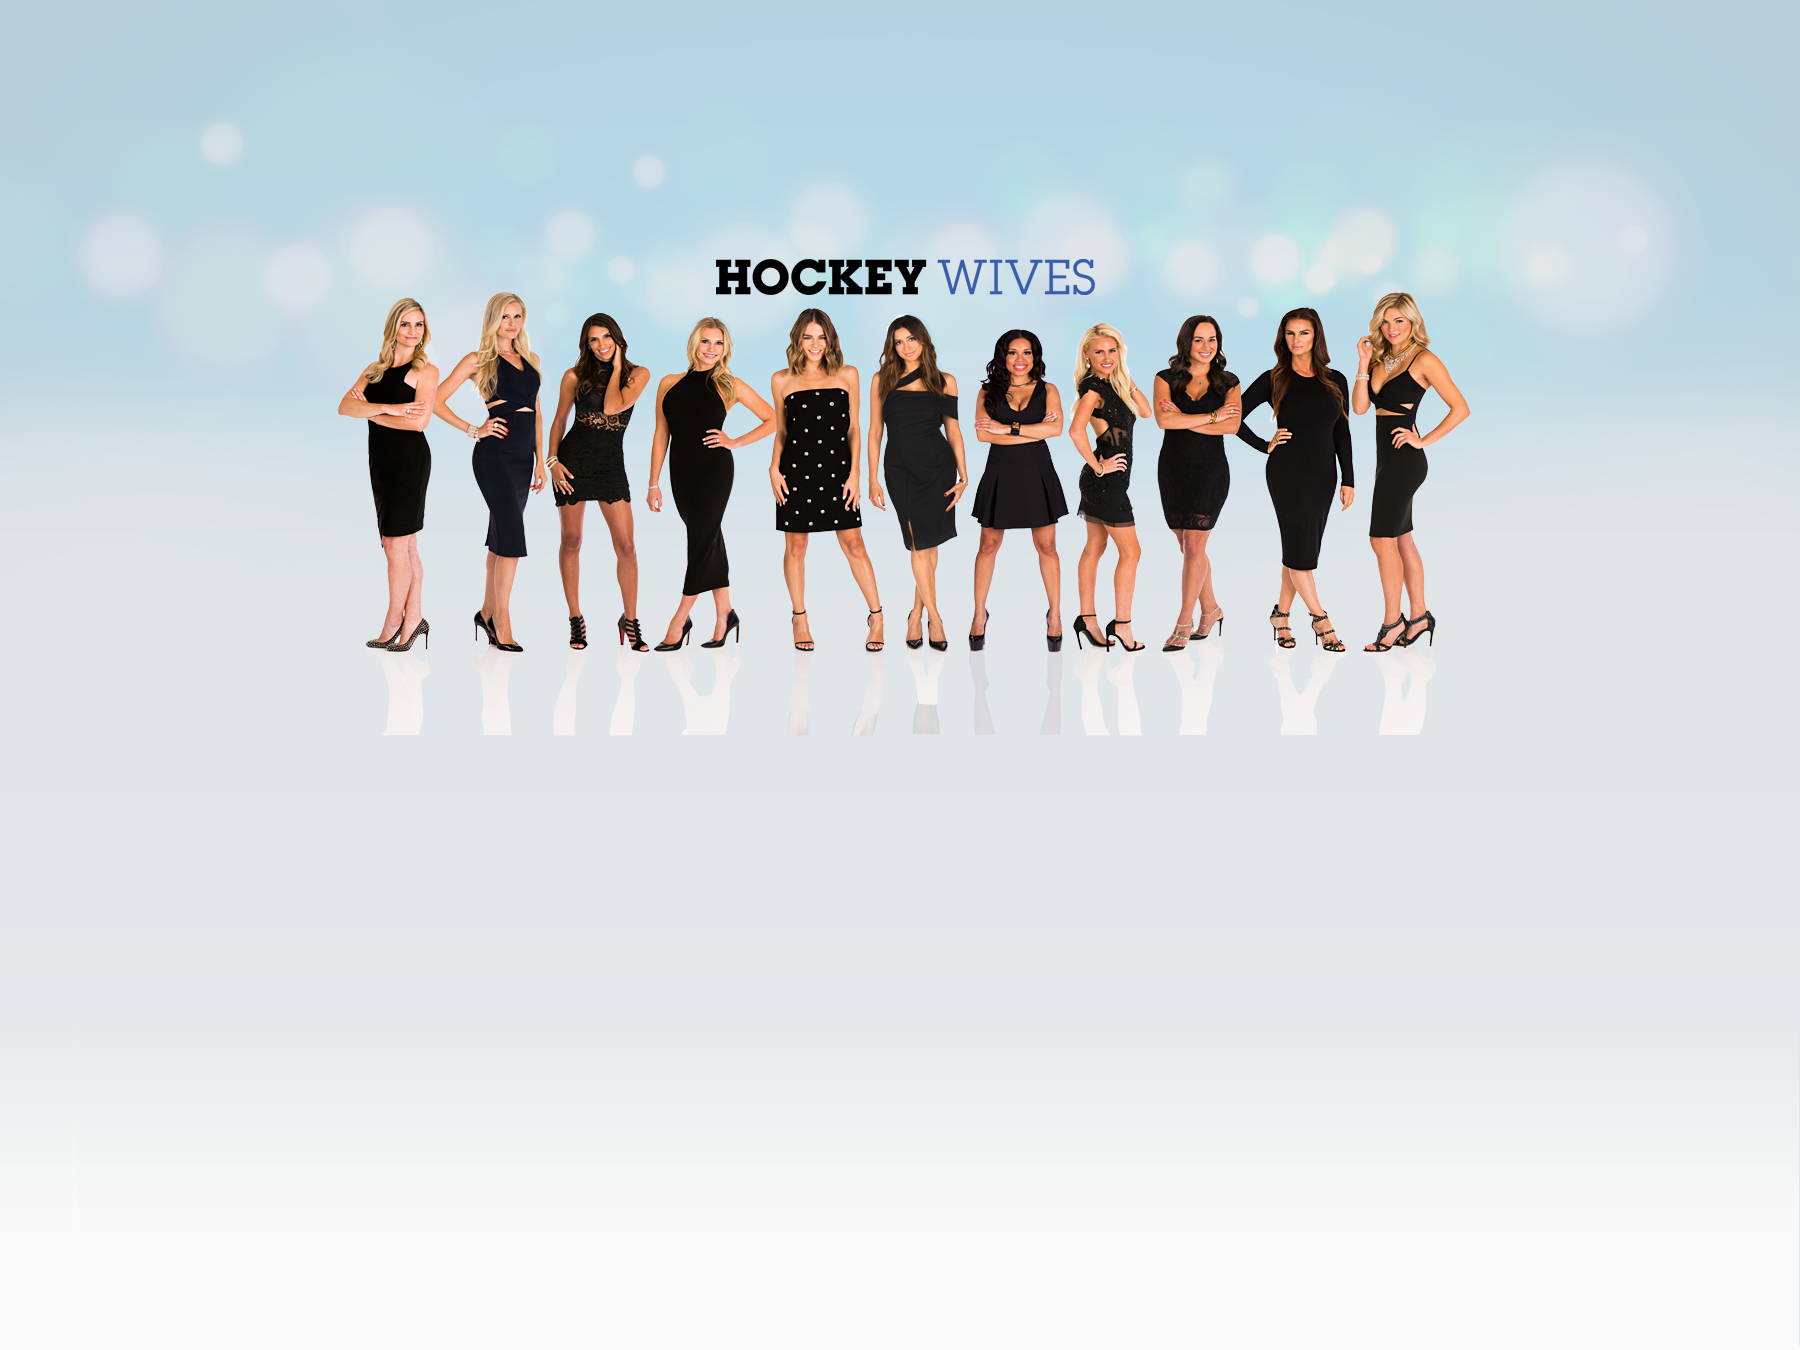 Hockey Wives: Put some Pep in your Step as a Mother